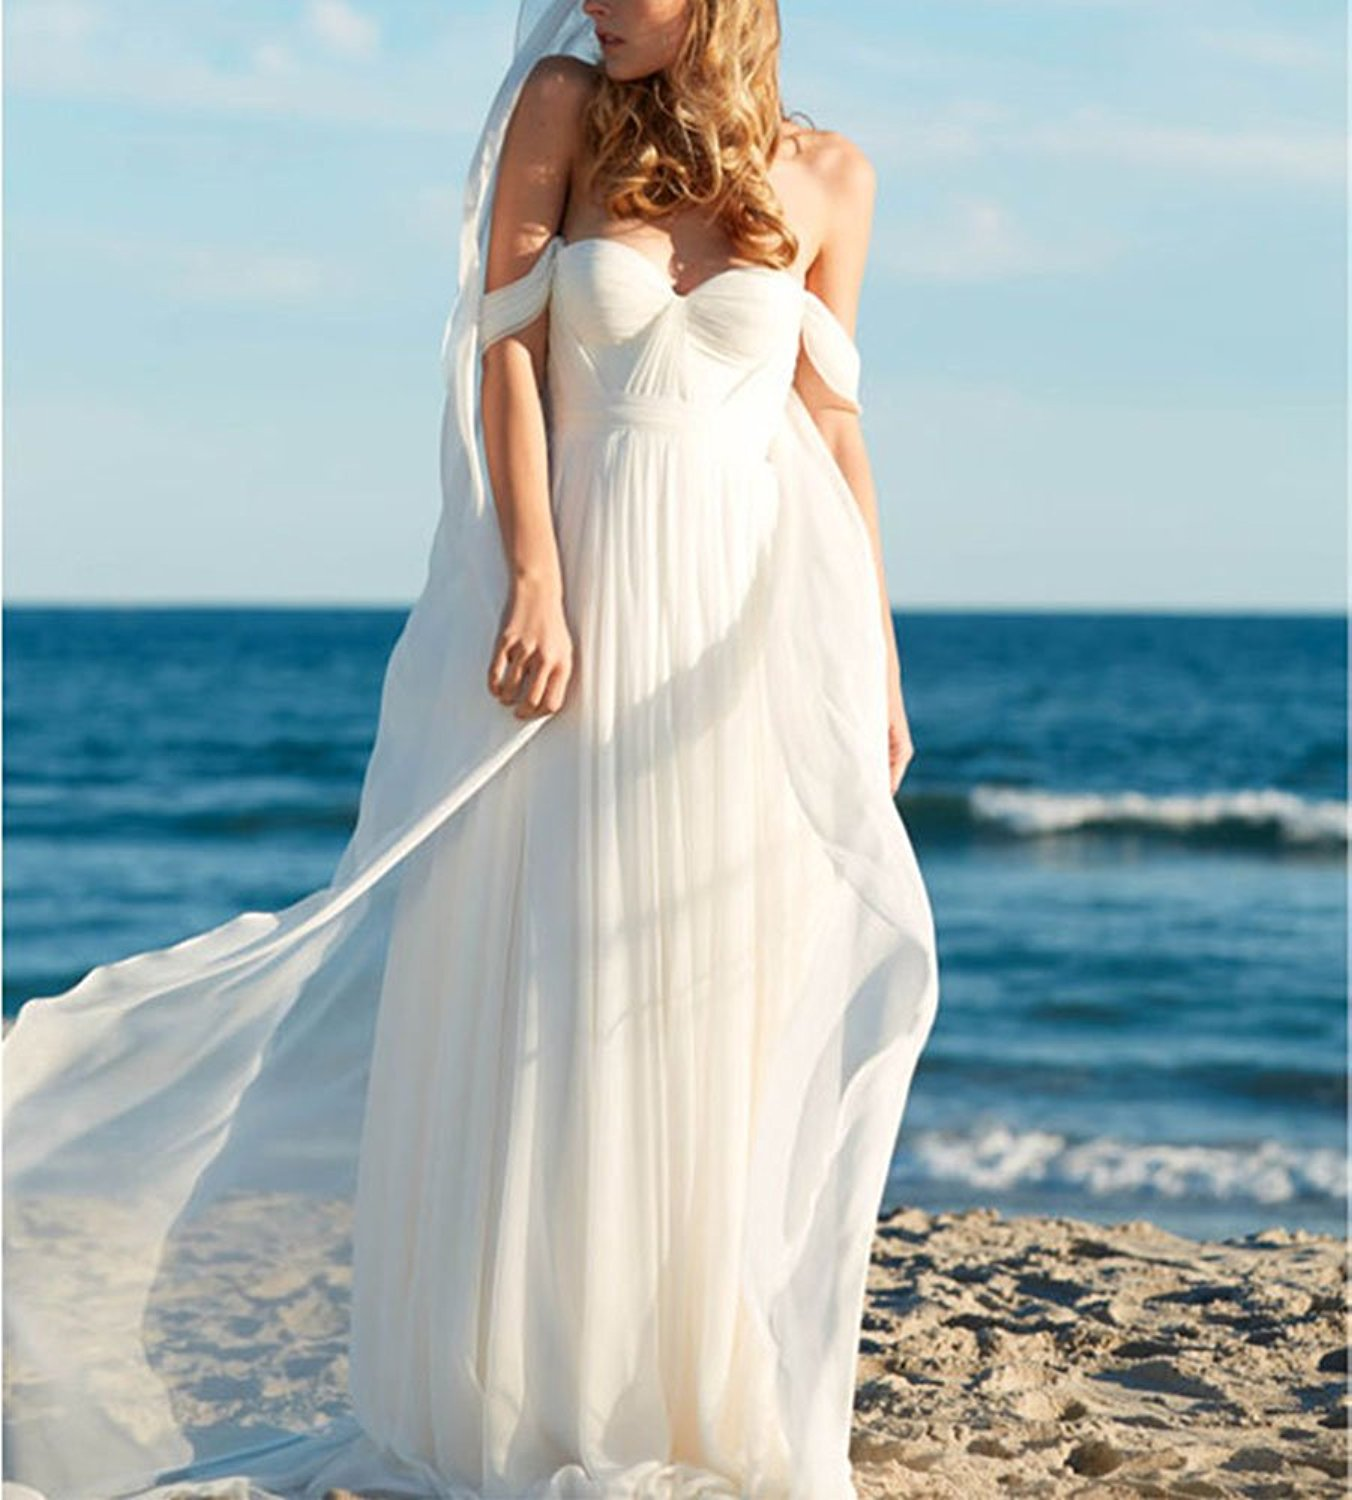 Dreses For Beach Weding 026 - Dreses For Beach Weding